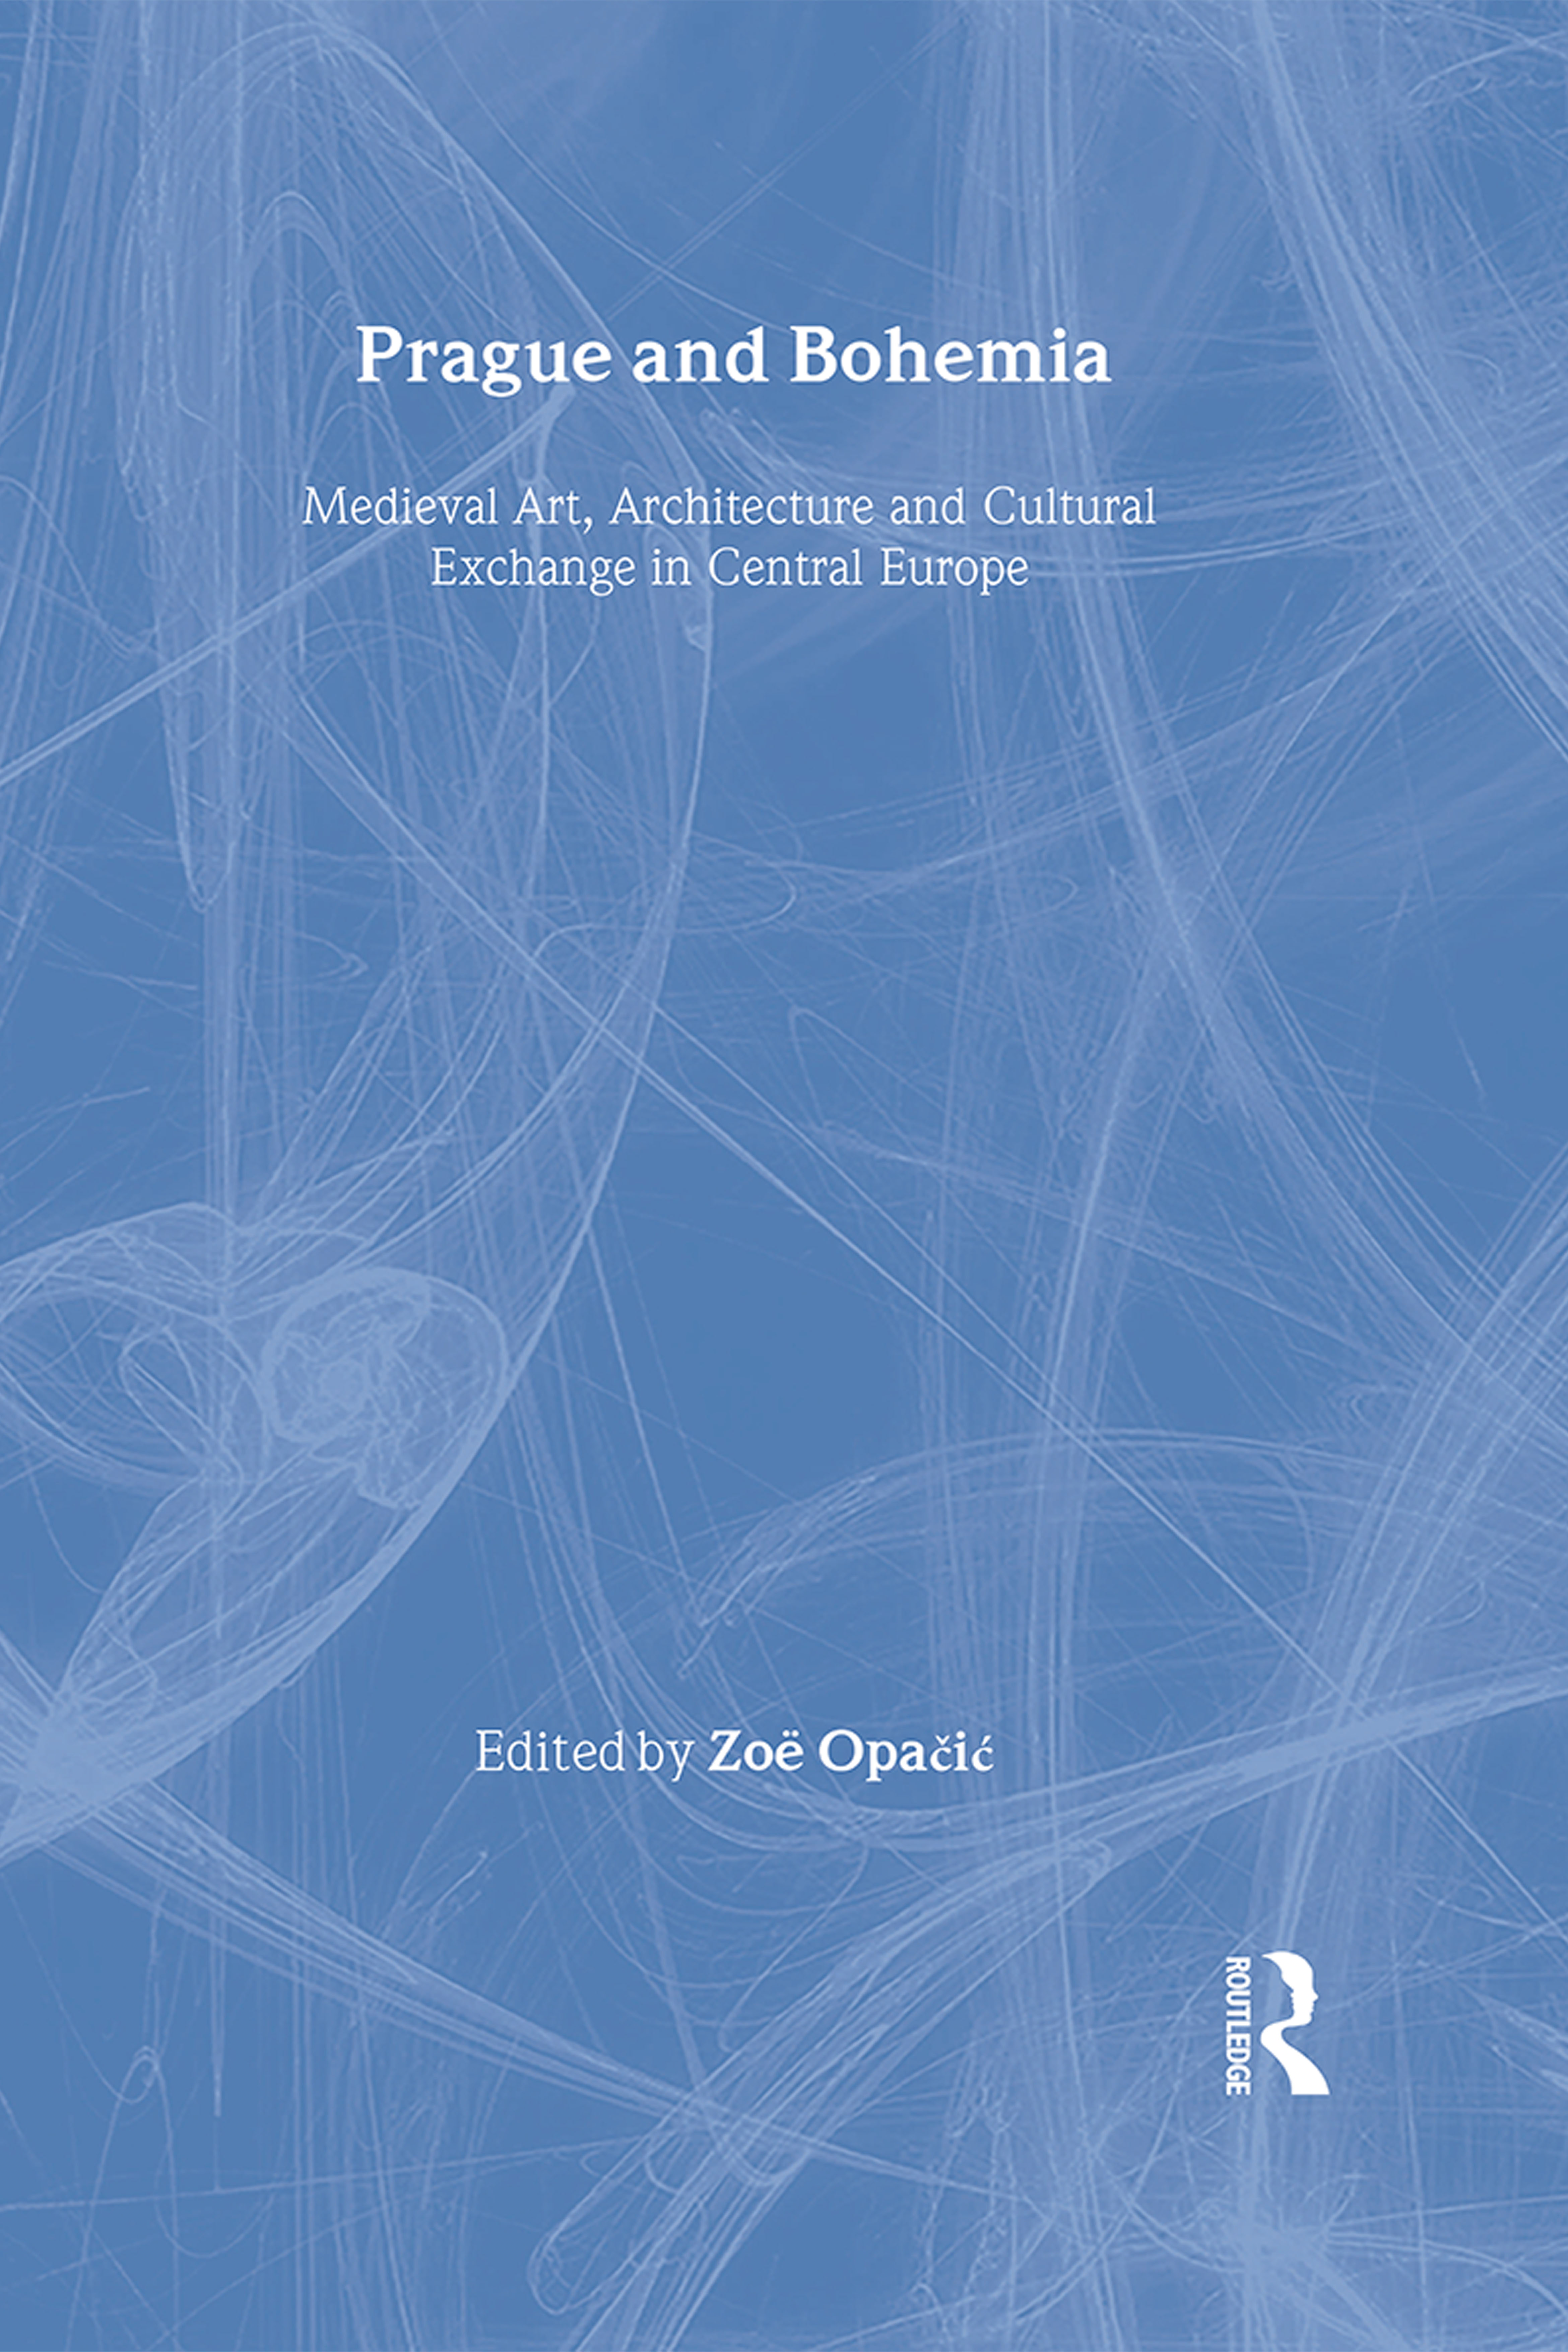 Prague and Bohemia: Medieval Art, Architecture and Cultural Exchange in Central Europe: Volume 32: Medieval Art, Architecture and Cultural Exchange in Central Europe, 1st Edition (Hardback) book cover